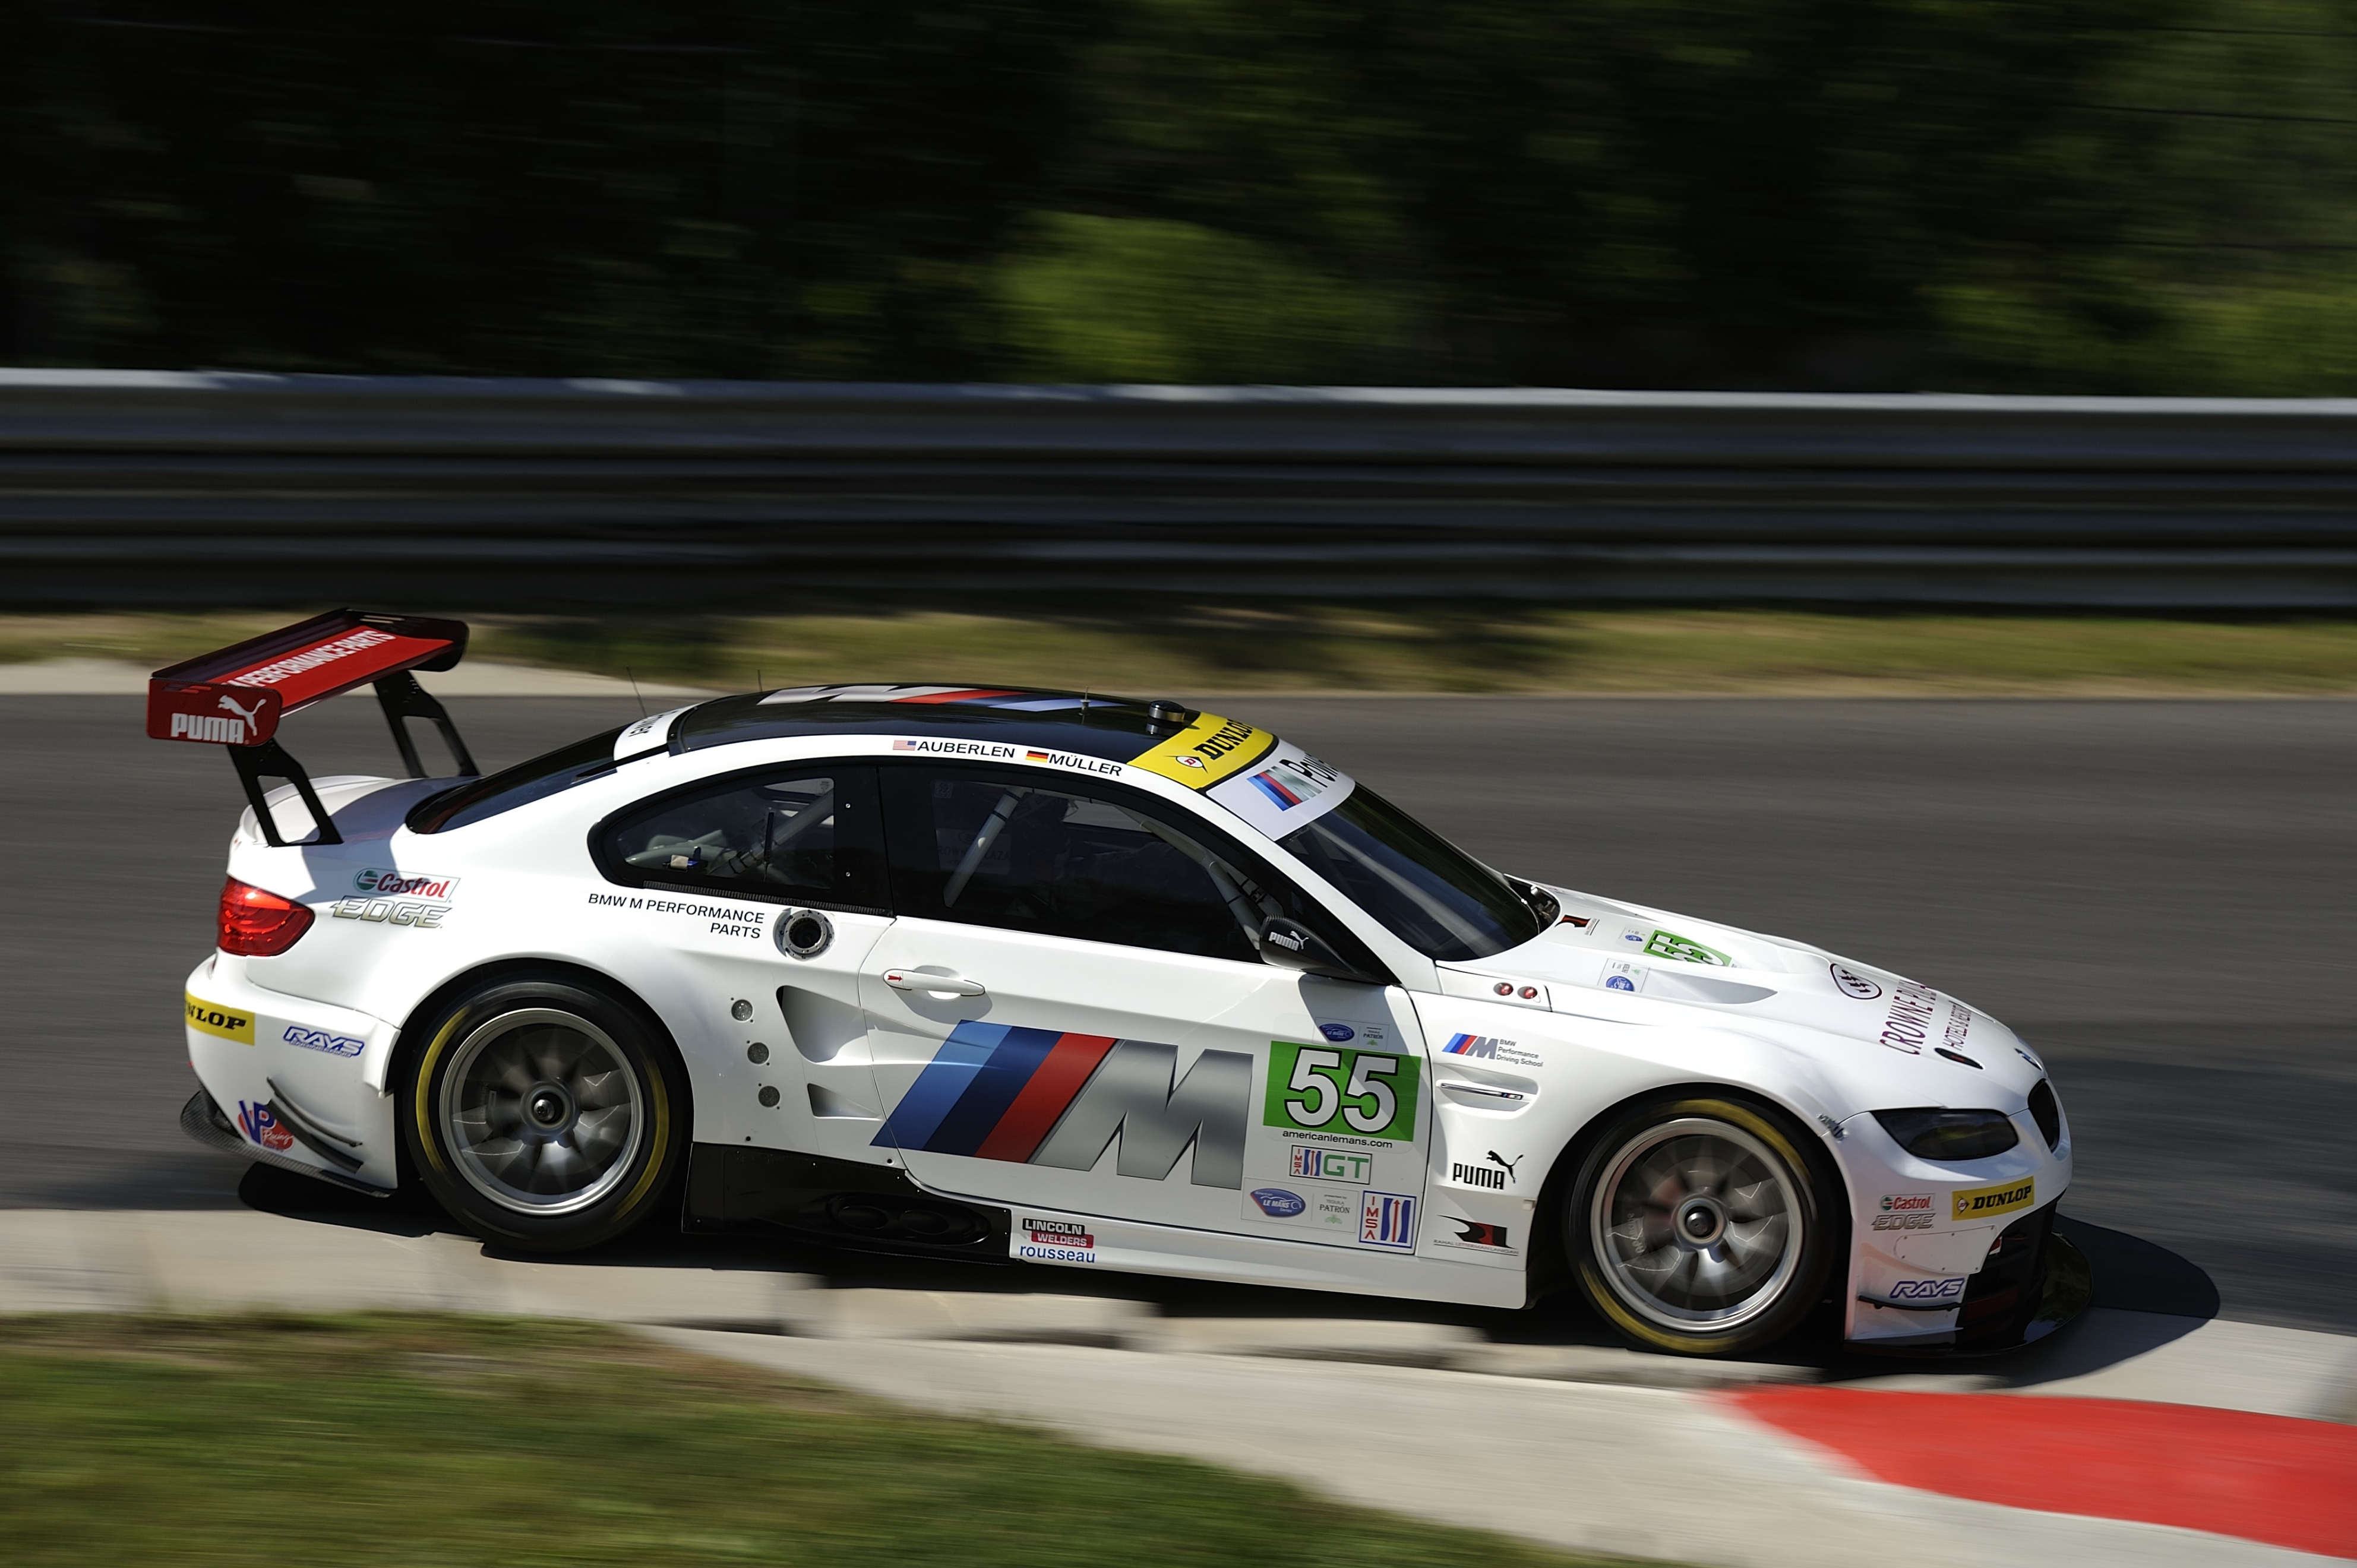 BMW RLL M3 GT Bill-Dirk 55